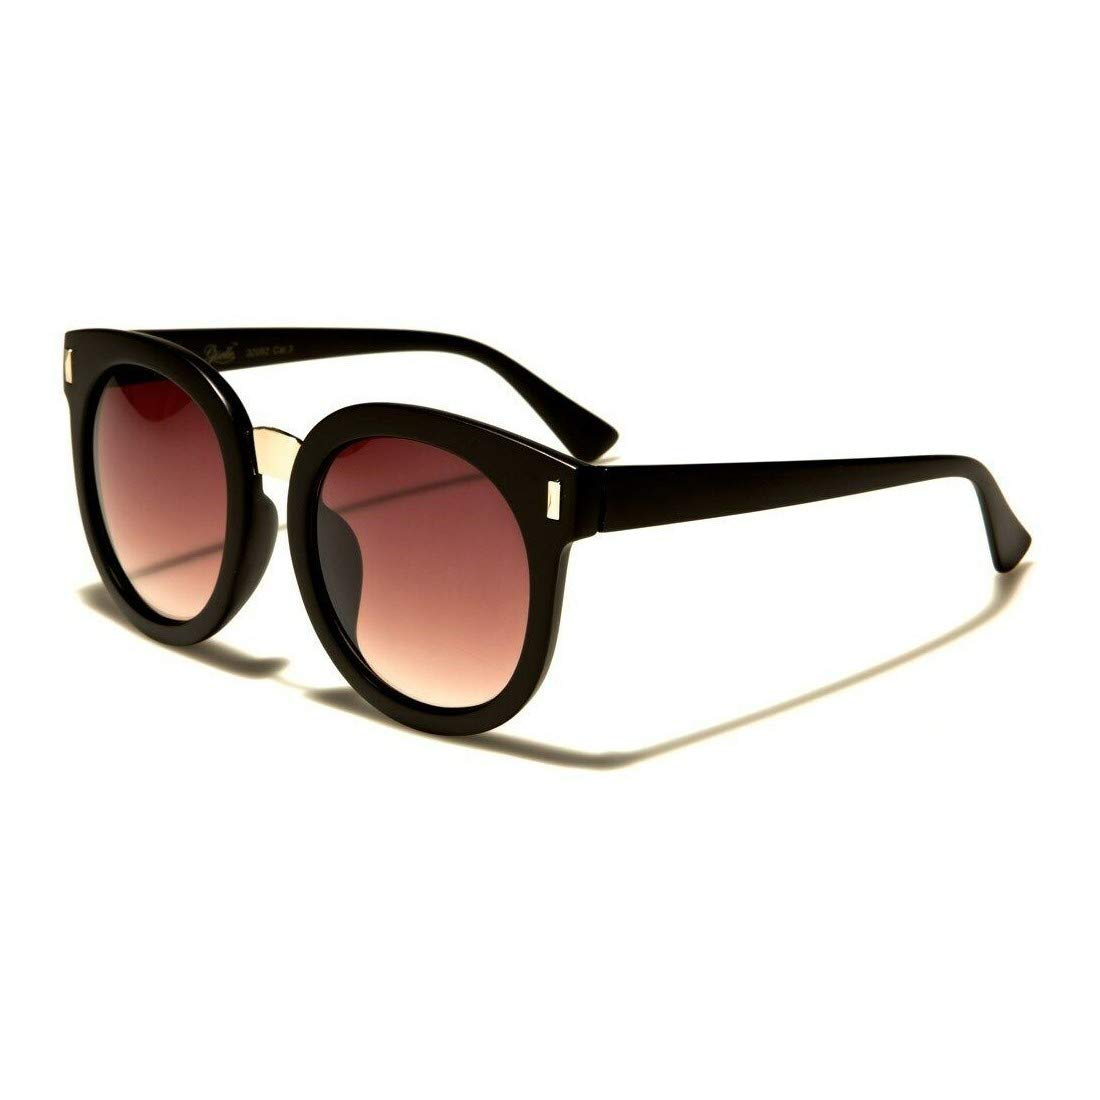 Giselle Thick Round Vintage Shaped Womens Designer Sunglasses